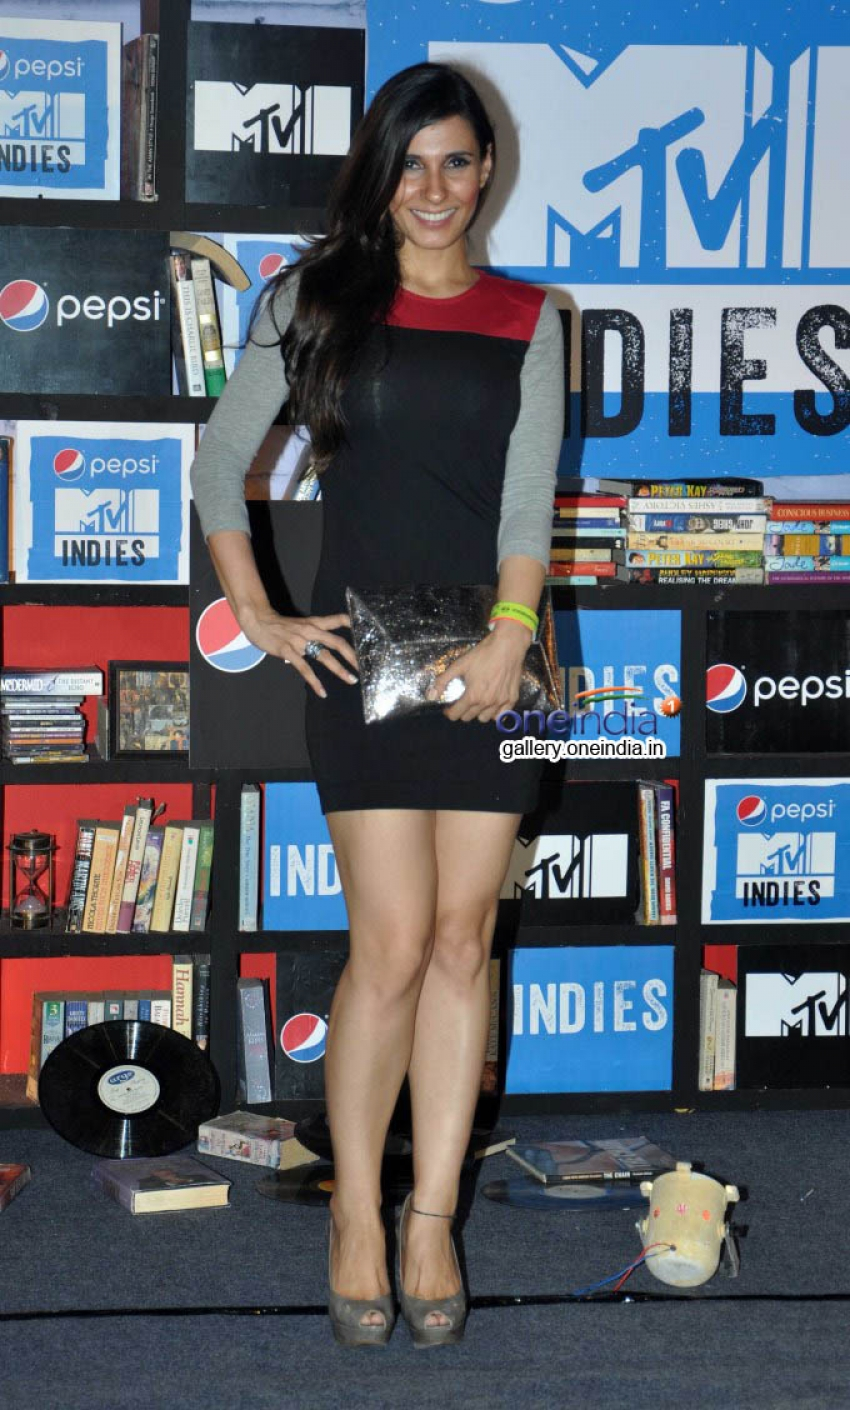 Launch Of Pepsi MTV Indies At Mehboob Studio Photos